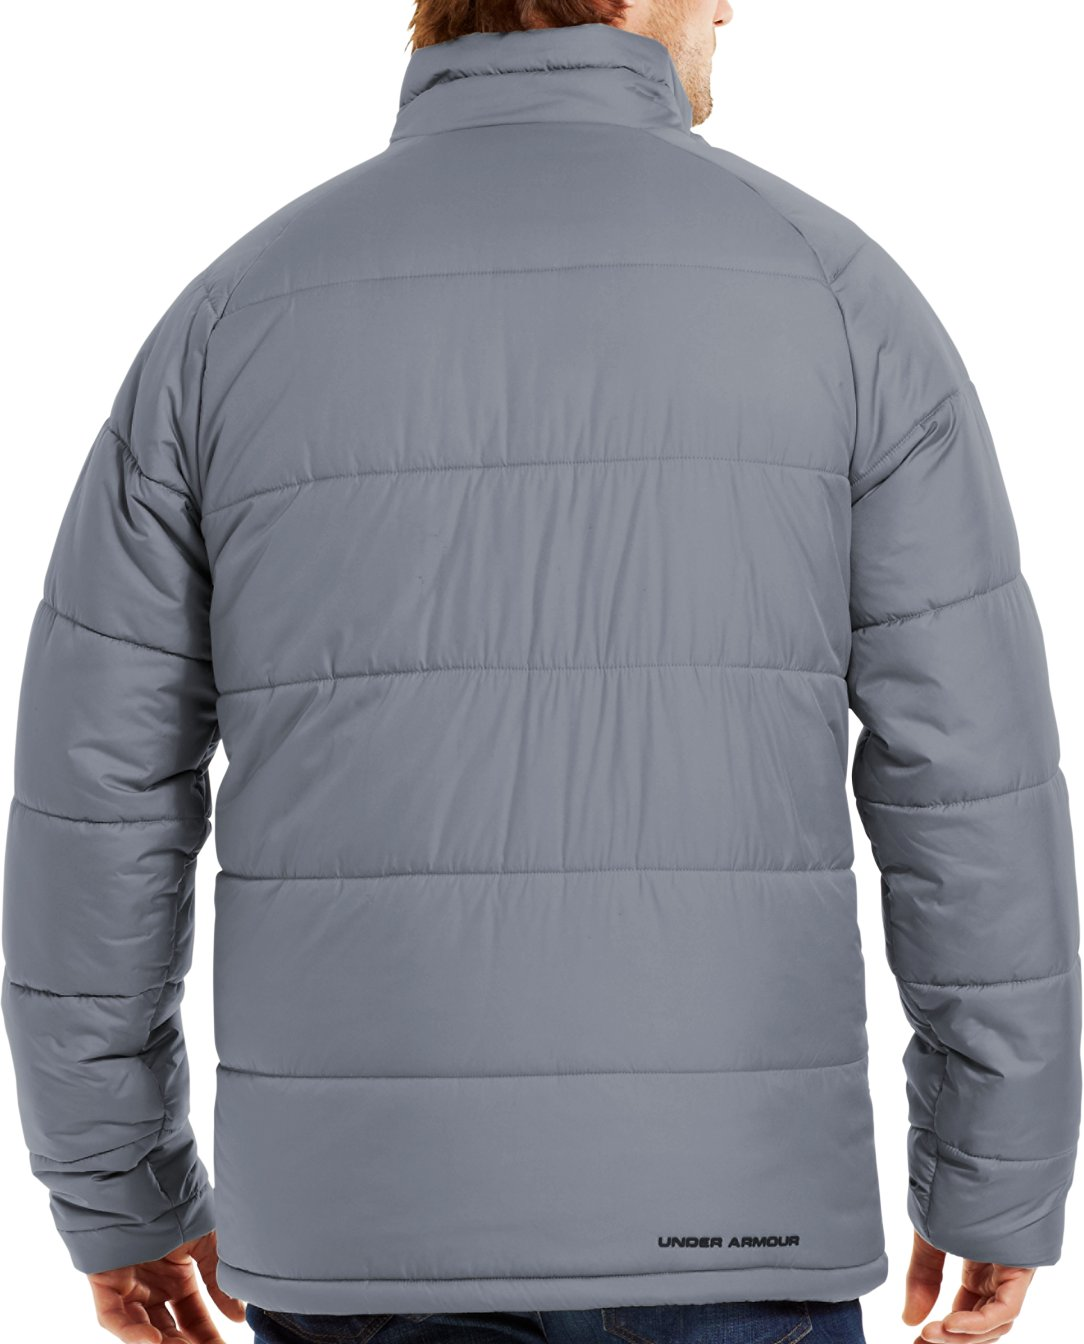 Men's ColdGear® Infrared Alpinlite Max Jacket, Steel, Back